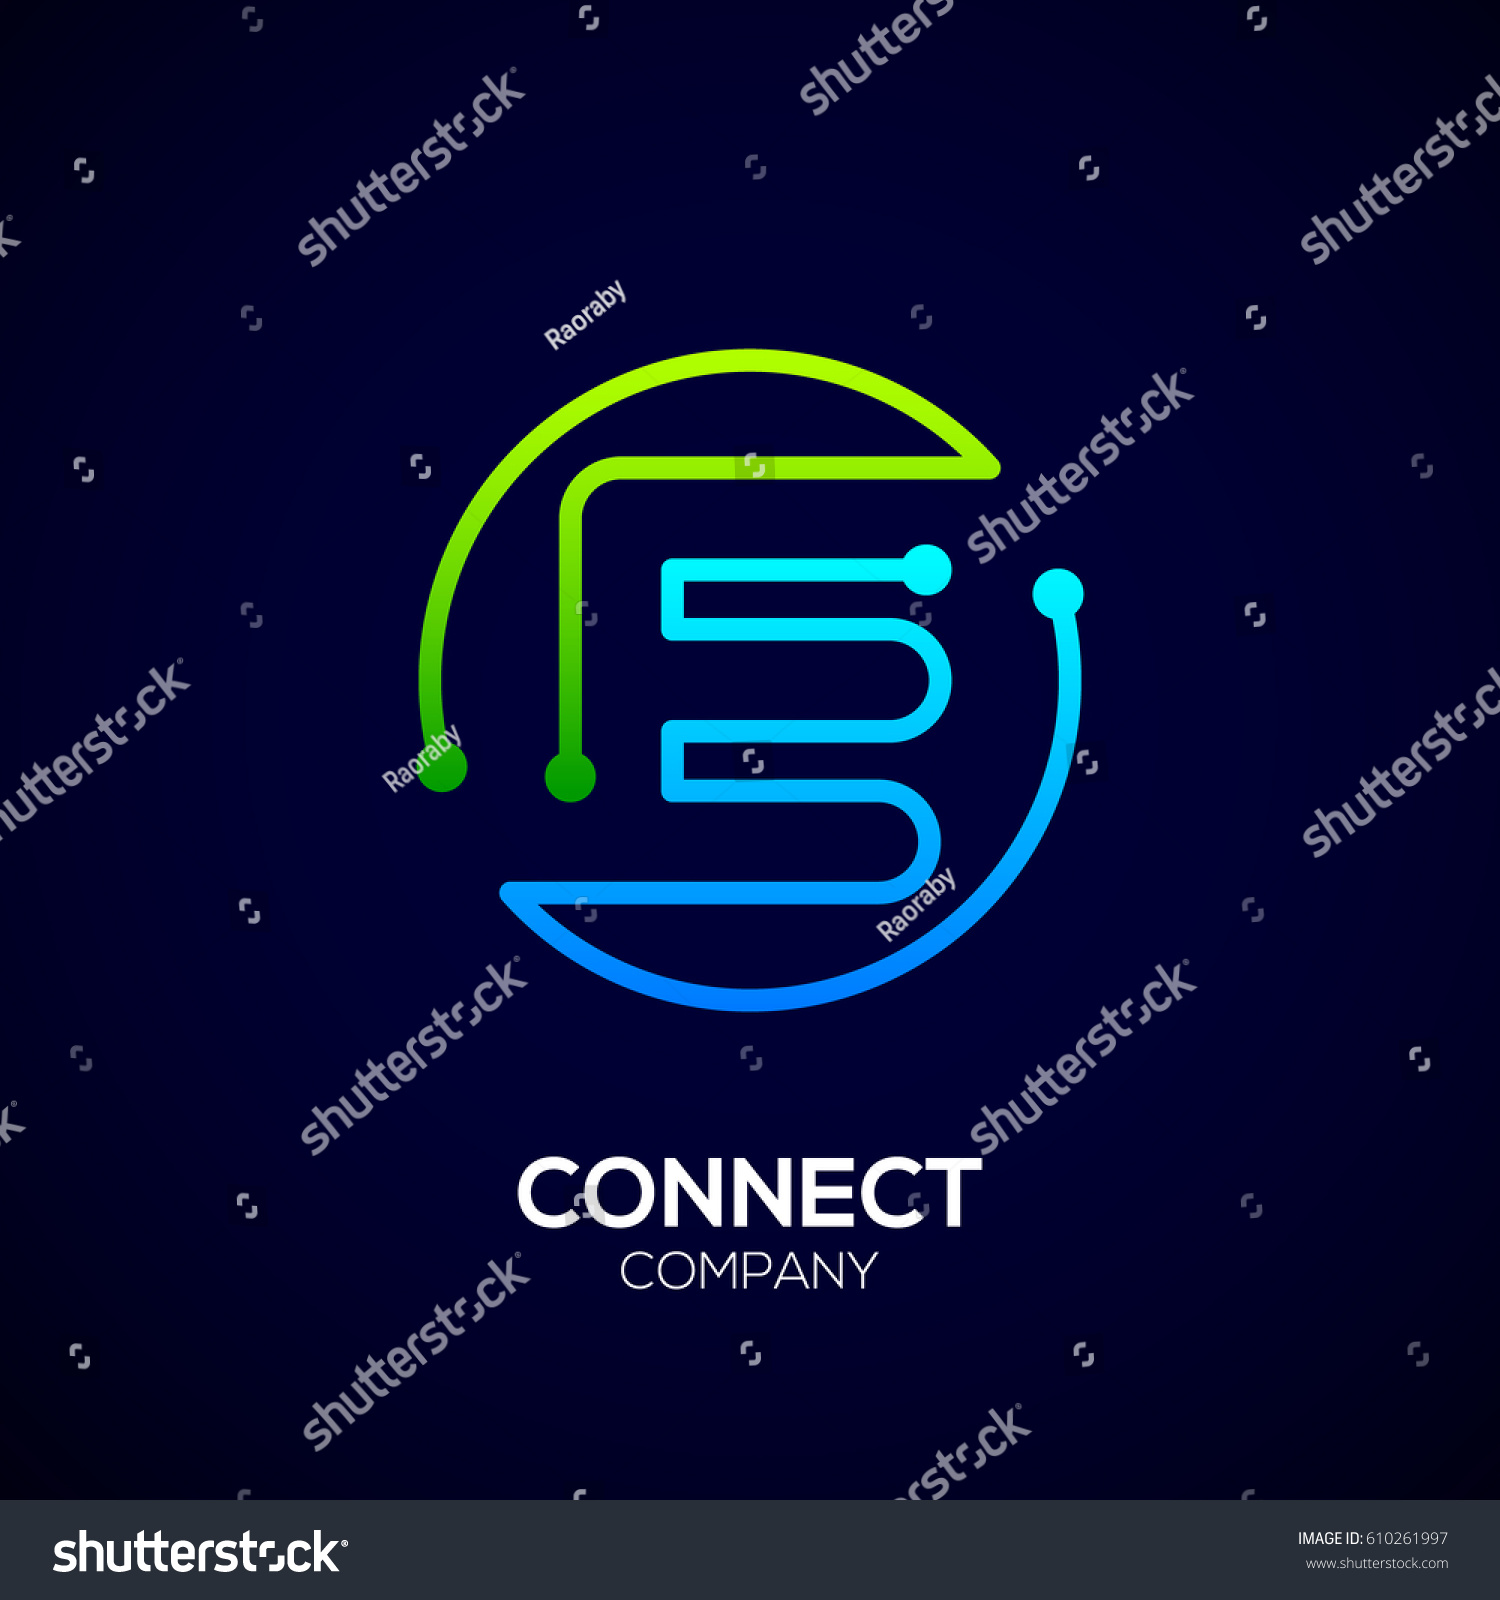 Letter e logo circle shape symbol stock vector 610261997 letter e logo circle shape symbol green and blue color technology and digital biocorpaavc Images